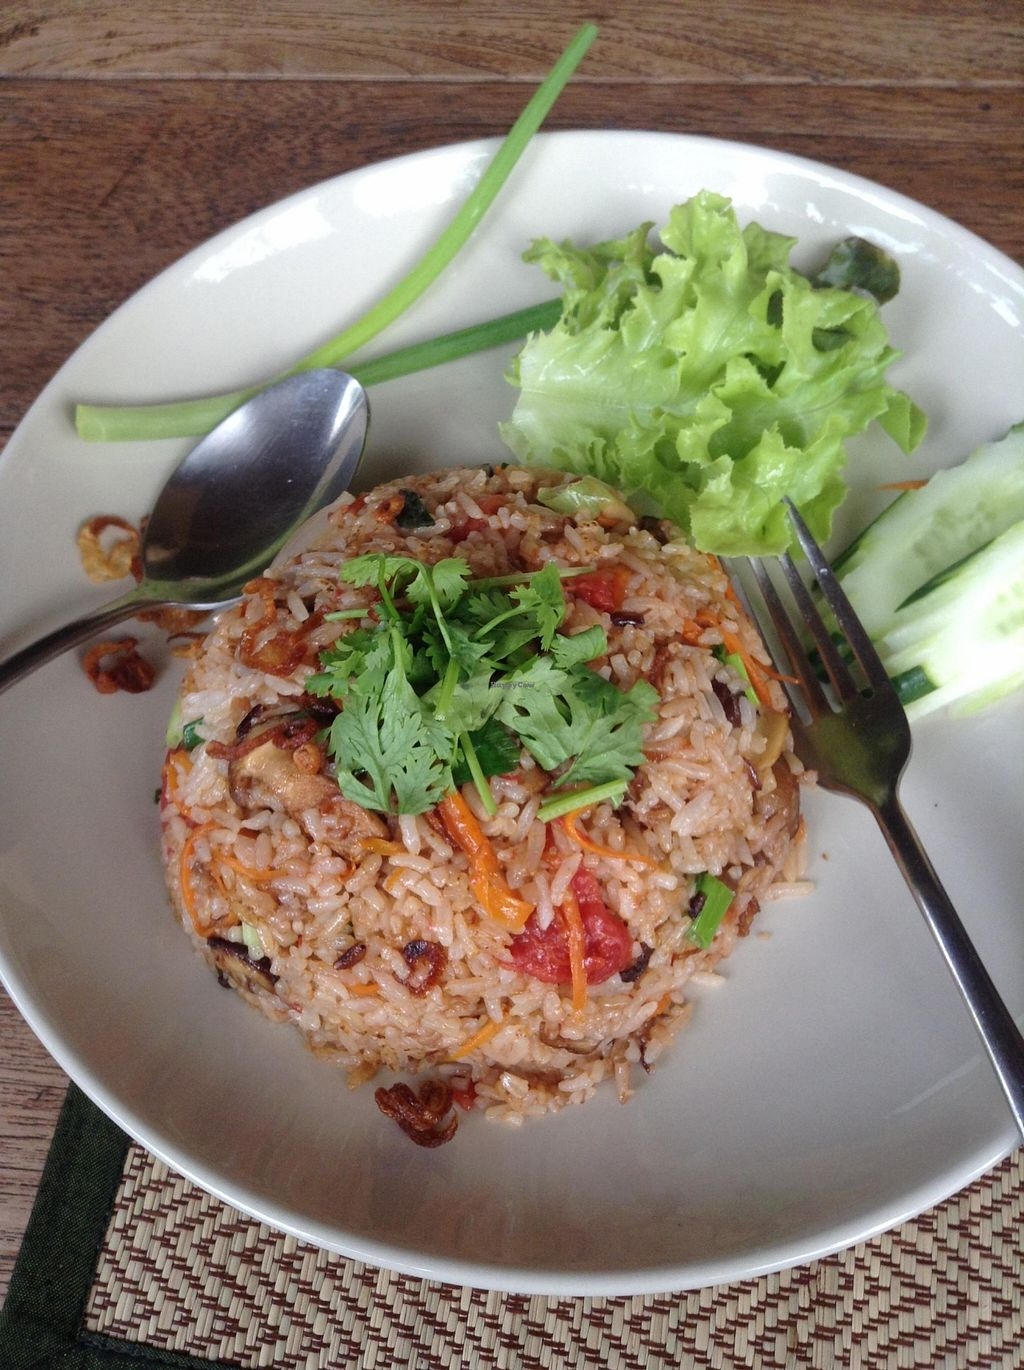 """Photo of Green Tiger House  by <a href=""""/members/profile/YozzyOti"""">YozzyOti</a> <br/>fried rice <br/> September 18, 2015  - <a href='/contact/abuse/image/46701/118249'>Report</a>"""